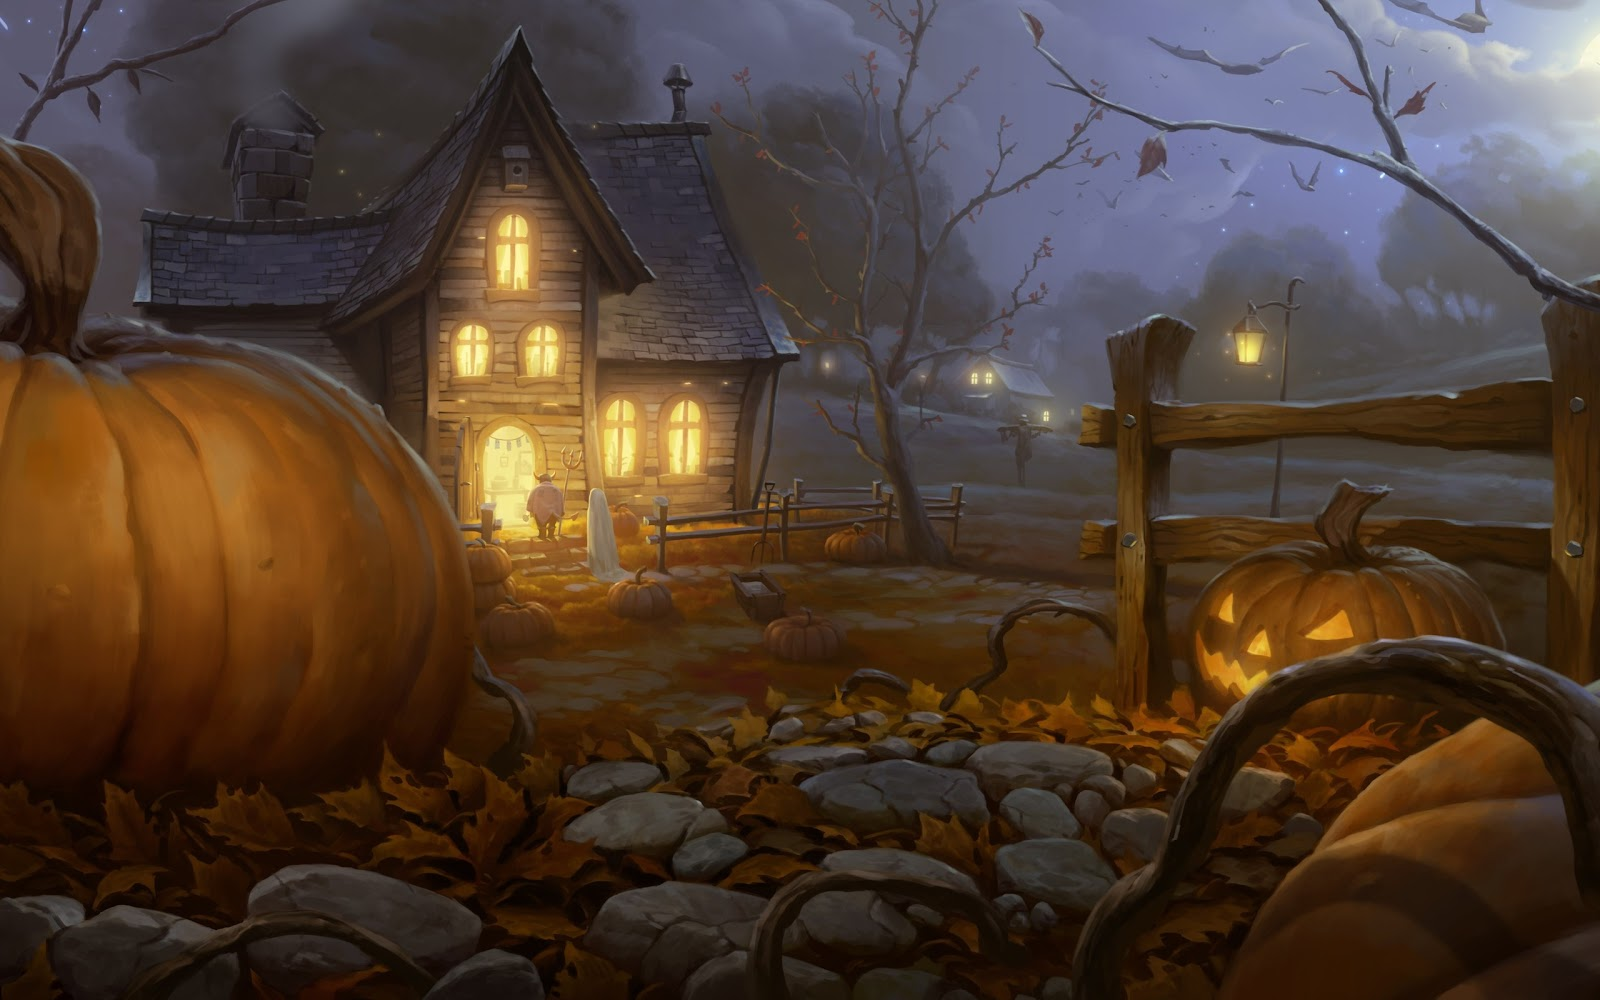 http://2.bp.blogspot.com/-jWEgsSK5bpA/UHbqxKzKNhI/AAAAAAAAHSY/z-jBmhHUc7Y/s1600/Halloween%20Wallpaper%20Background%20006.jpg